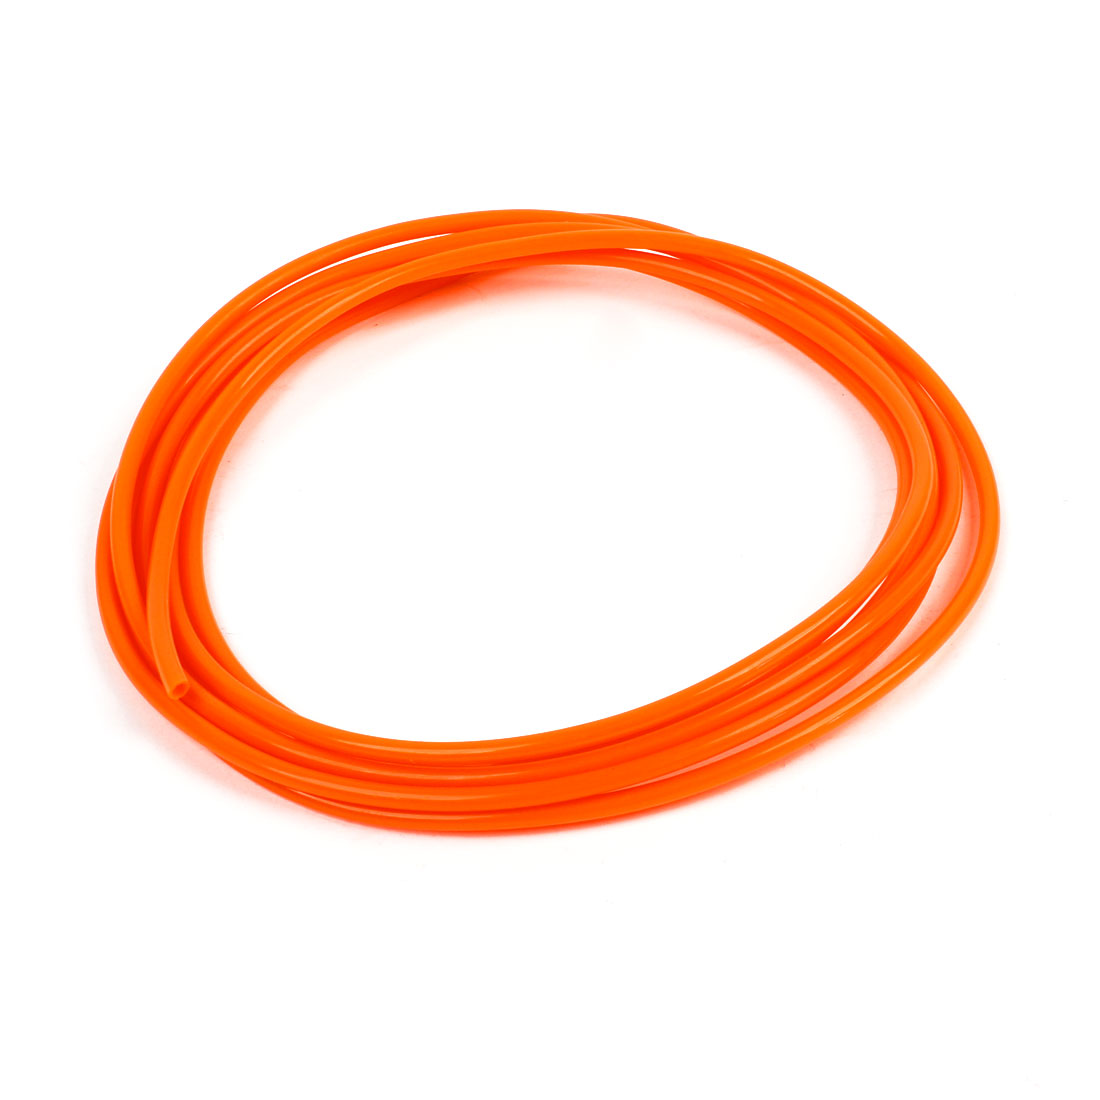 Orange 4mm OD 2.5mm ID 3 Meter Pneumatic PU Air Tube Hose